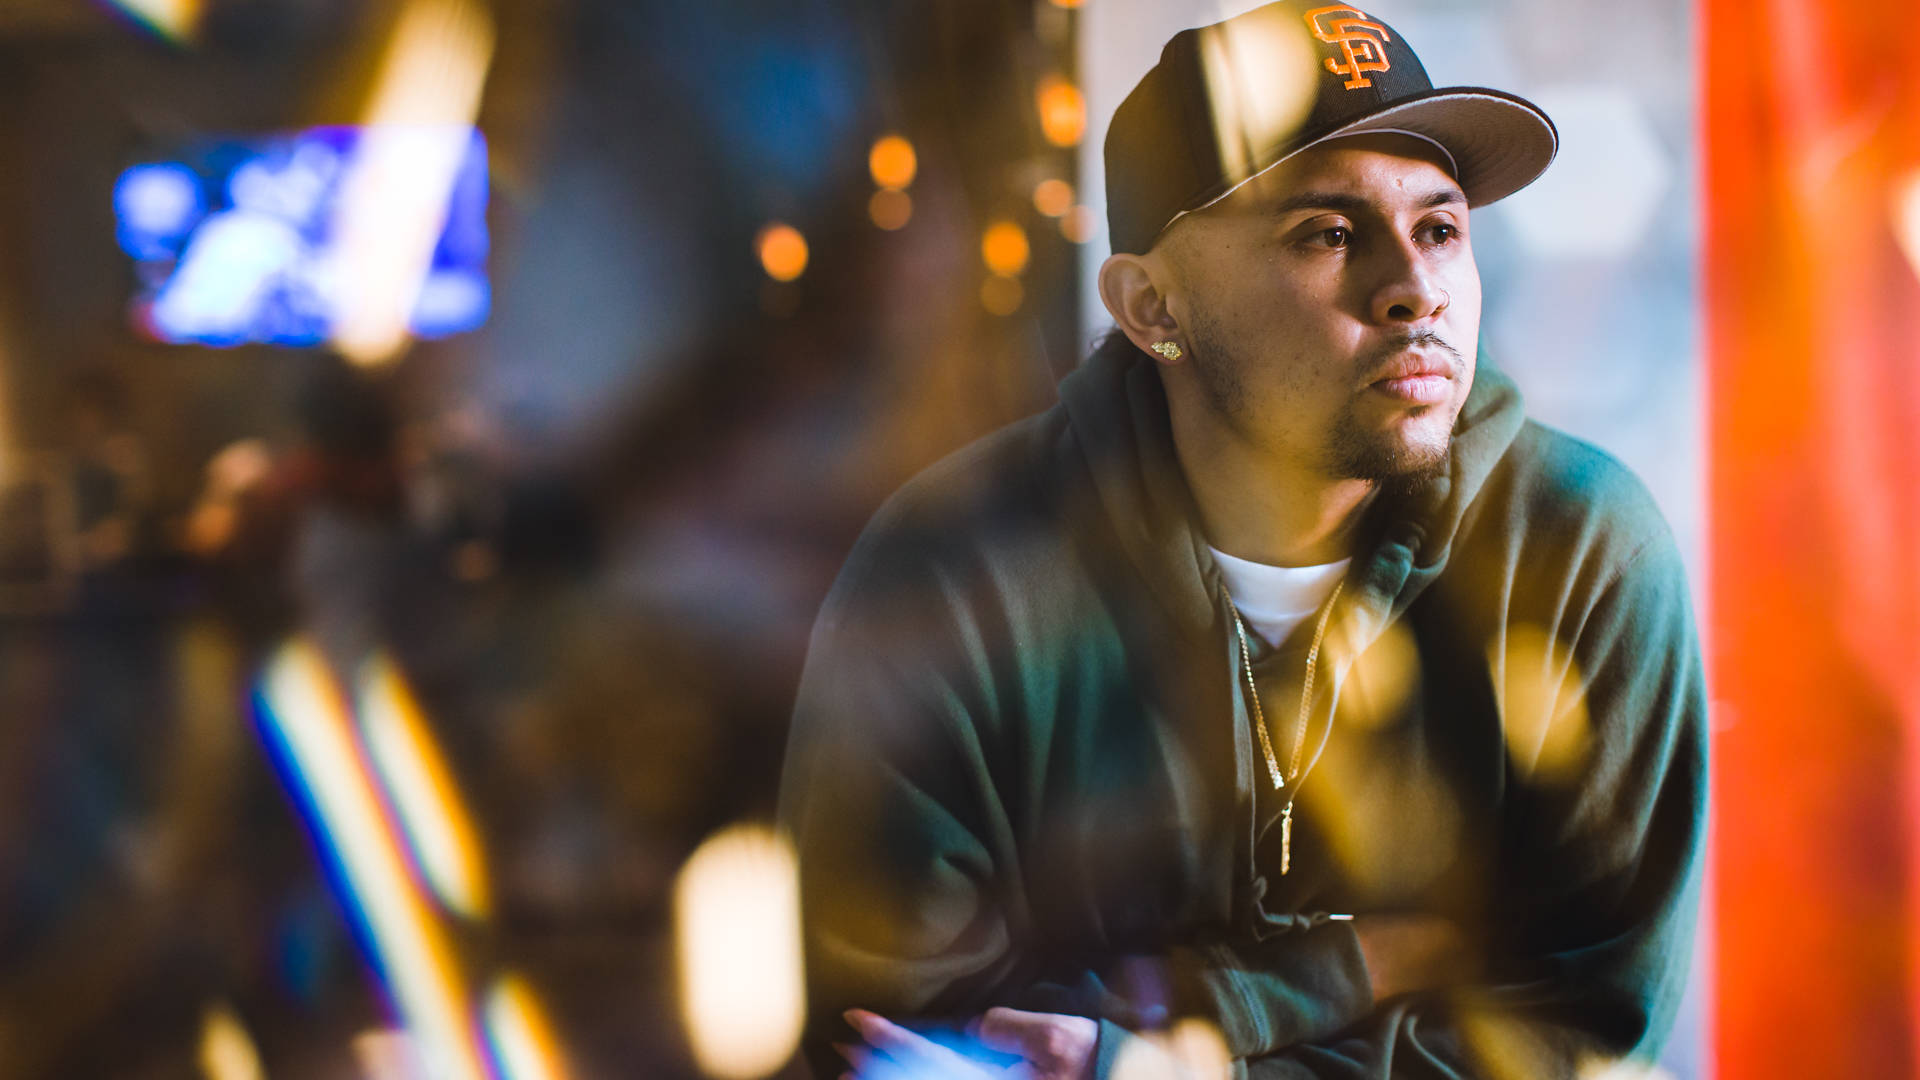 A founding member of IAMSU's HBK Gang, P-Lo recently collaborated with E-40. Kristina Bakrevski